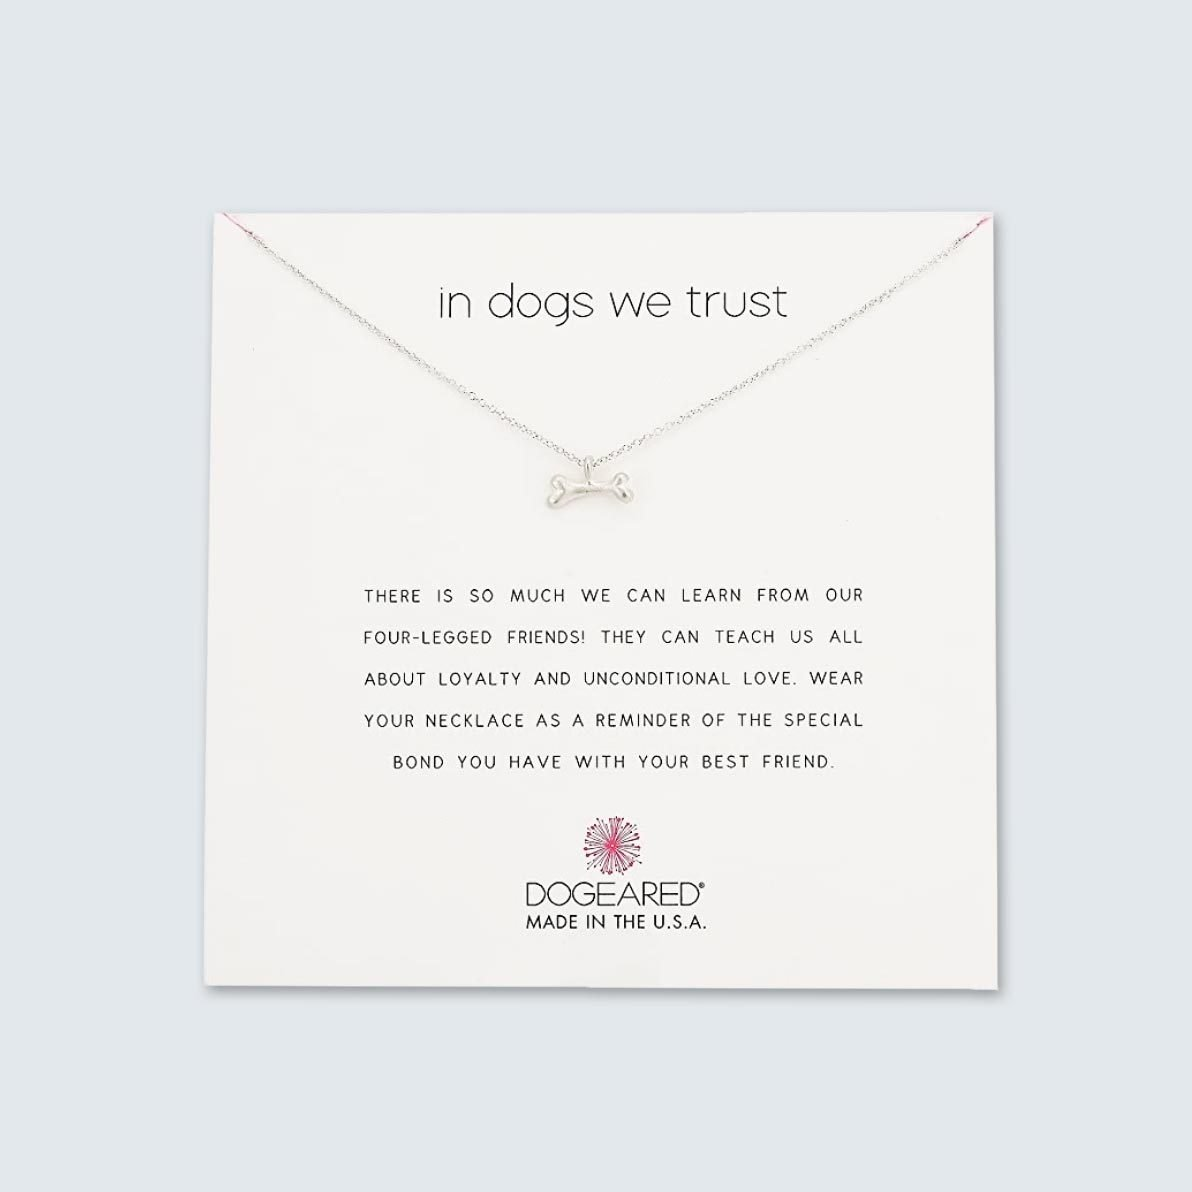 Dogeared In Dogs We Trust Dog Bone Necklace